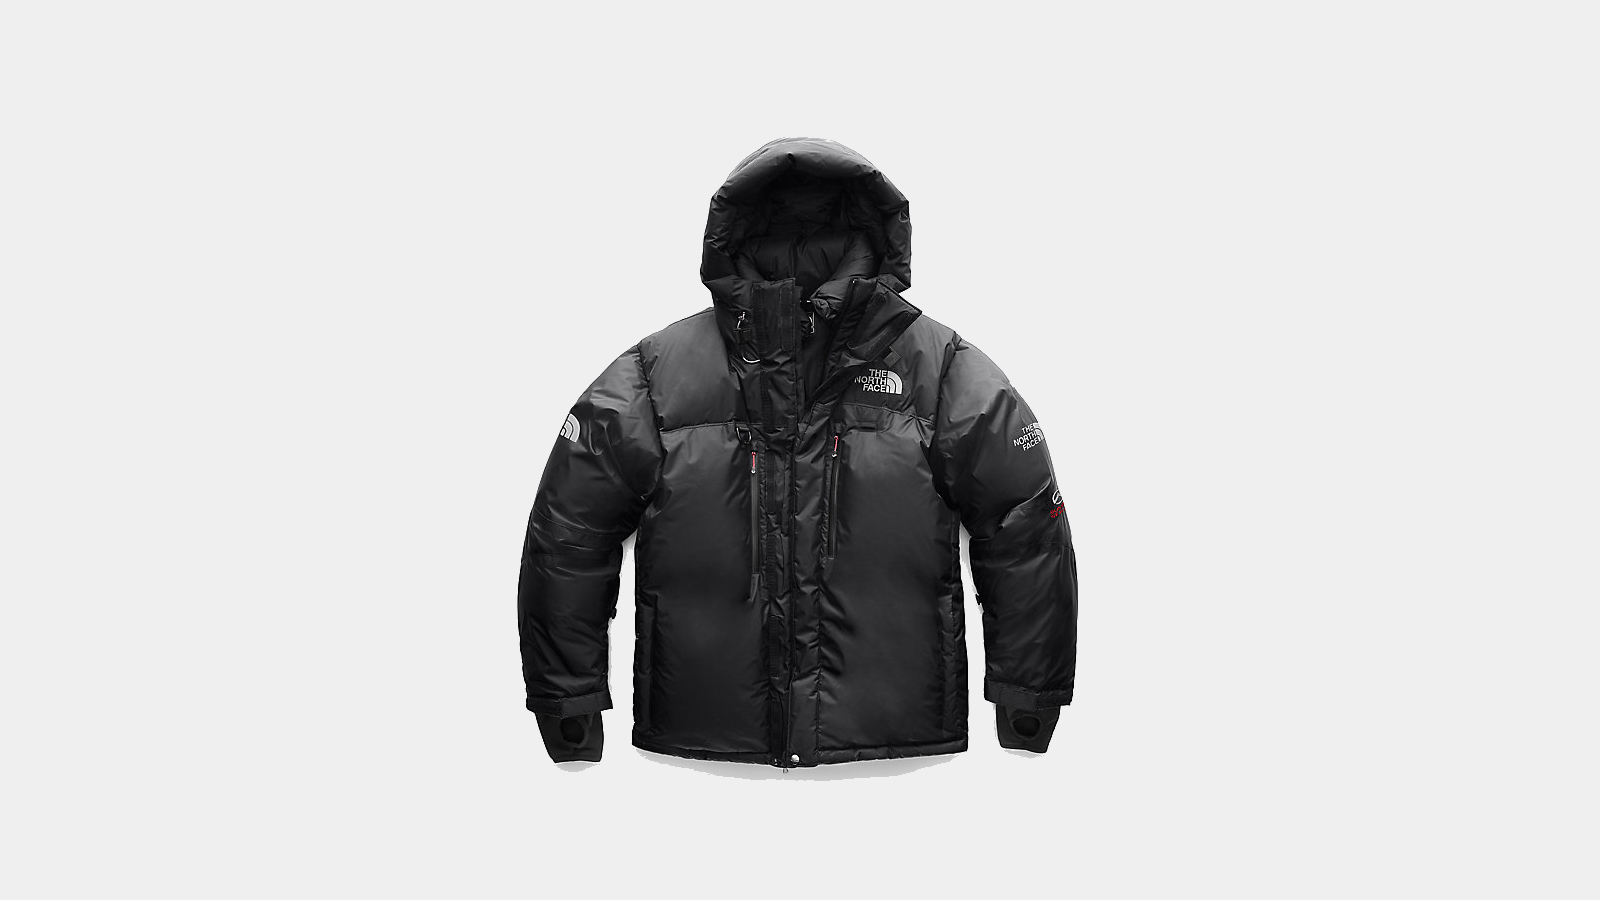 North Face Mens Himalayan Parka Men's Winter Fashion